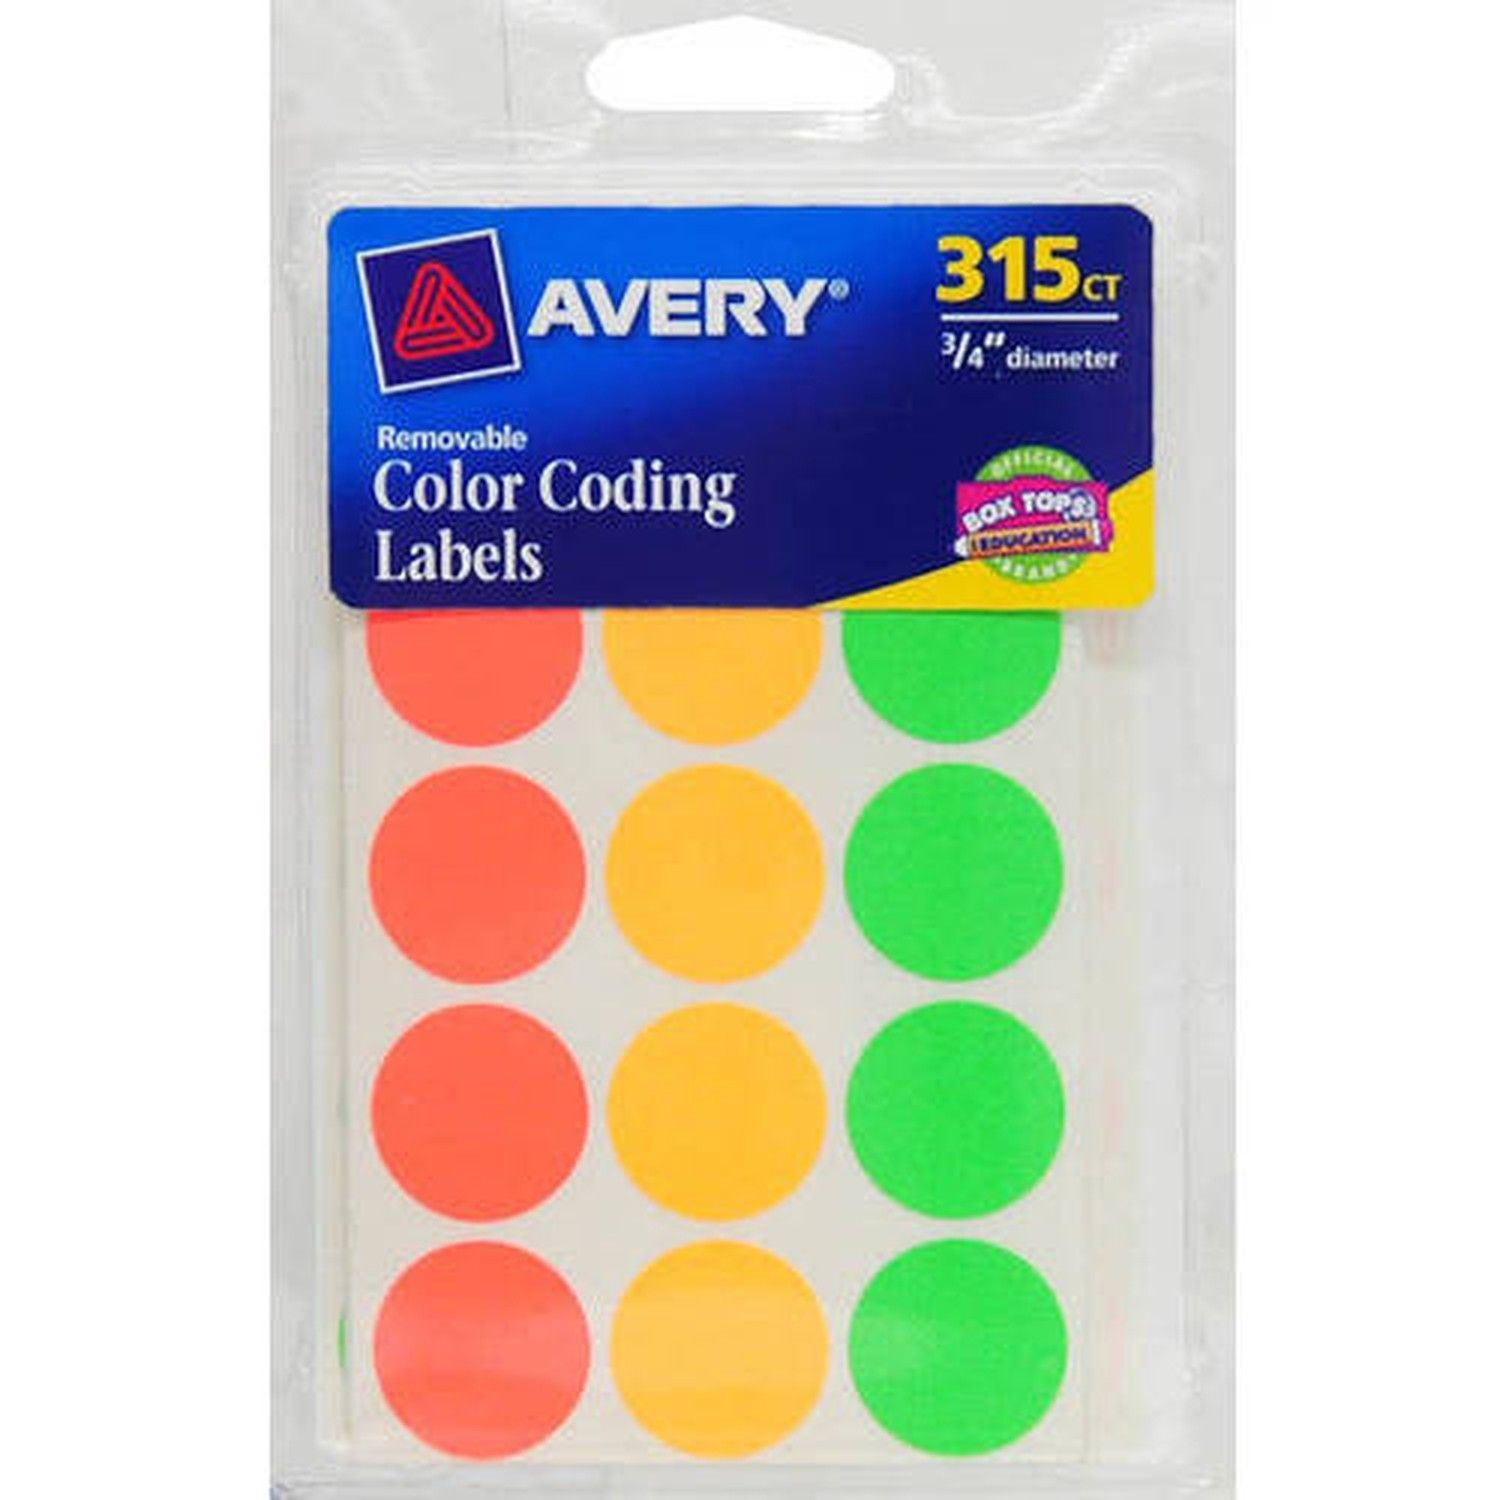 "Avery(R) Assorted Neon Color-Coding Labels 6733 3/4"" Round Pack of 315"